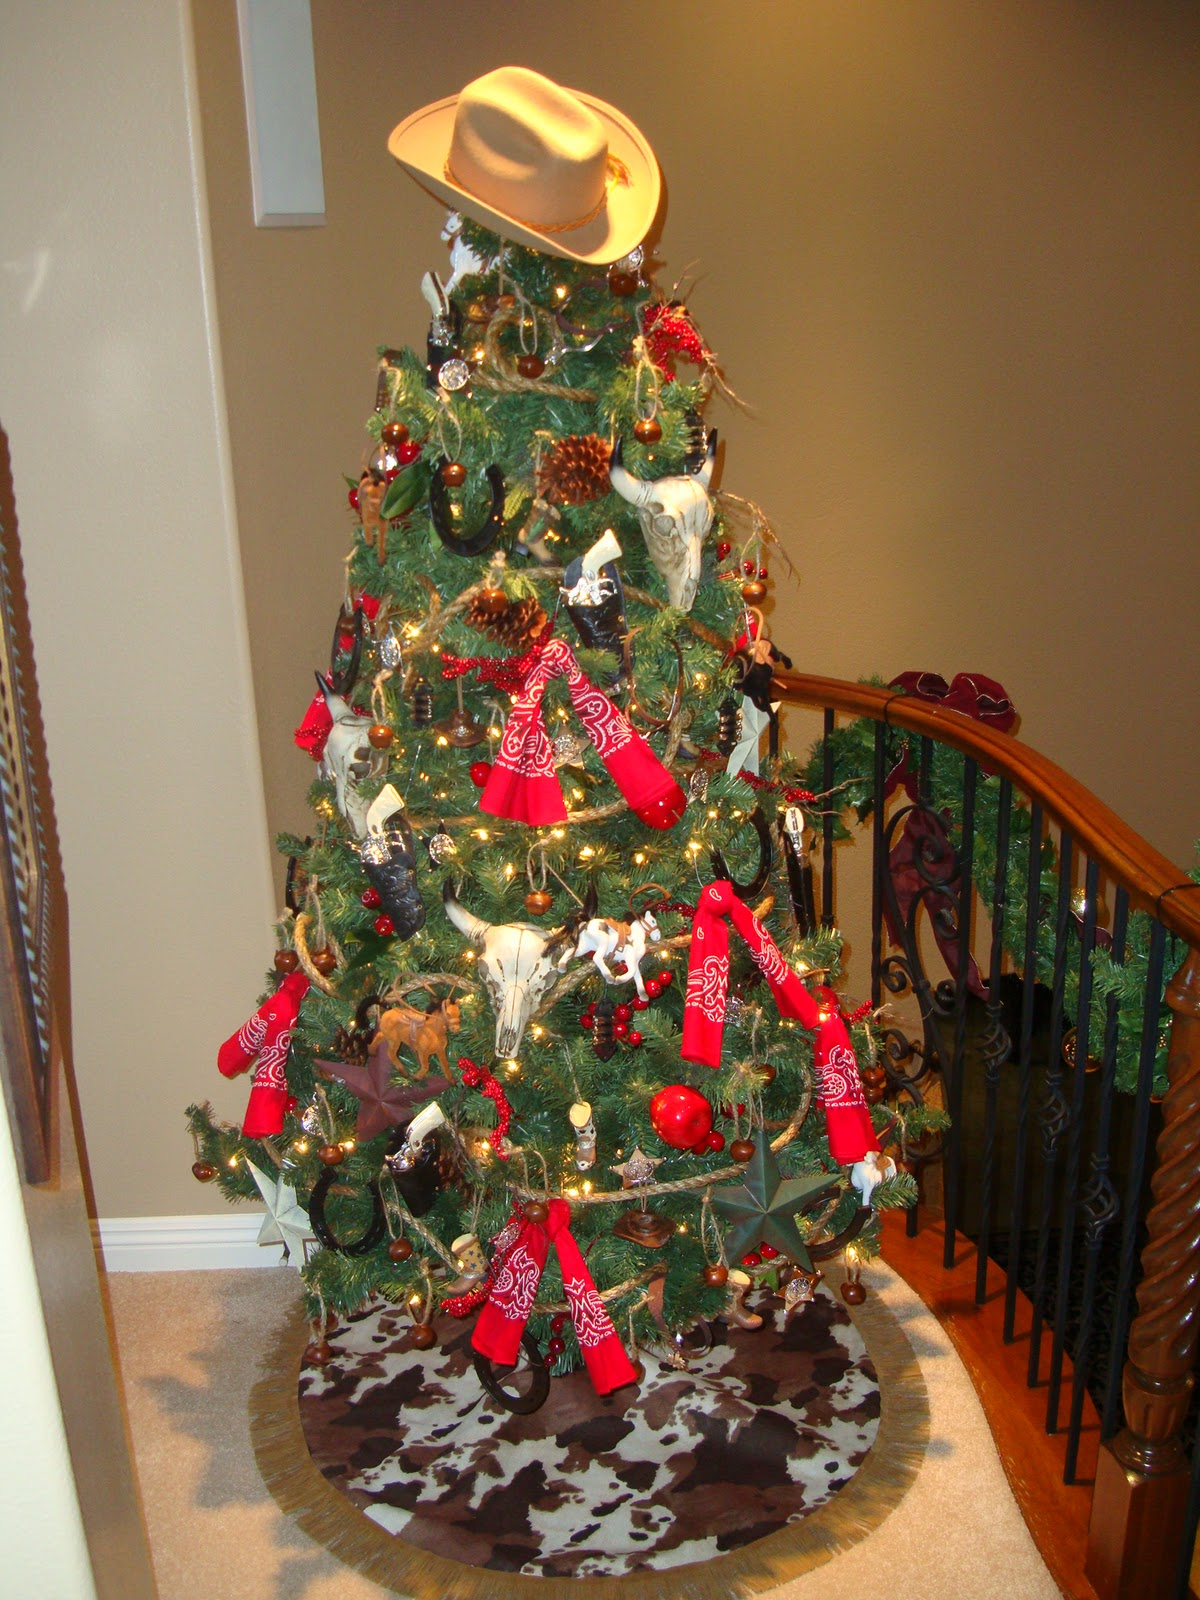 The After Christmas Tree